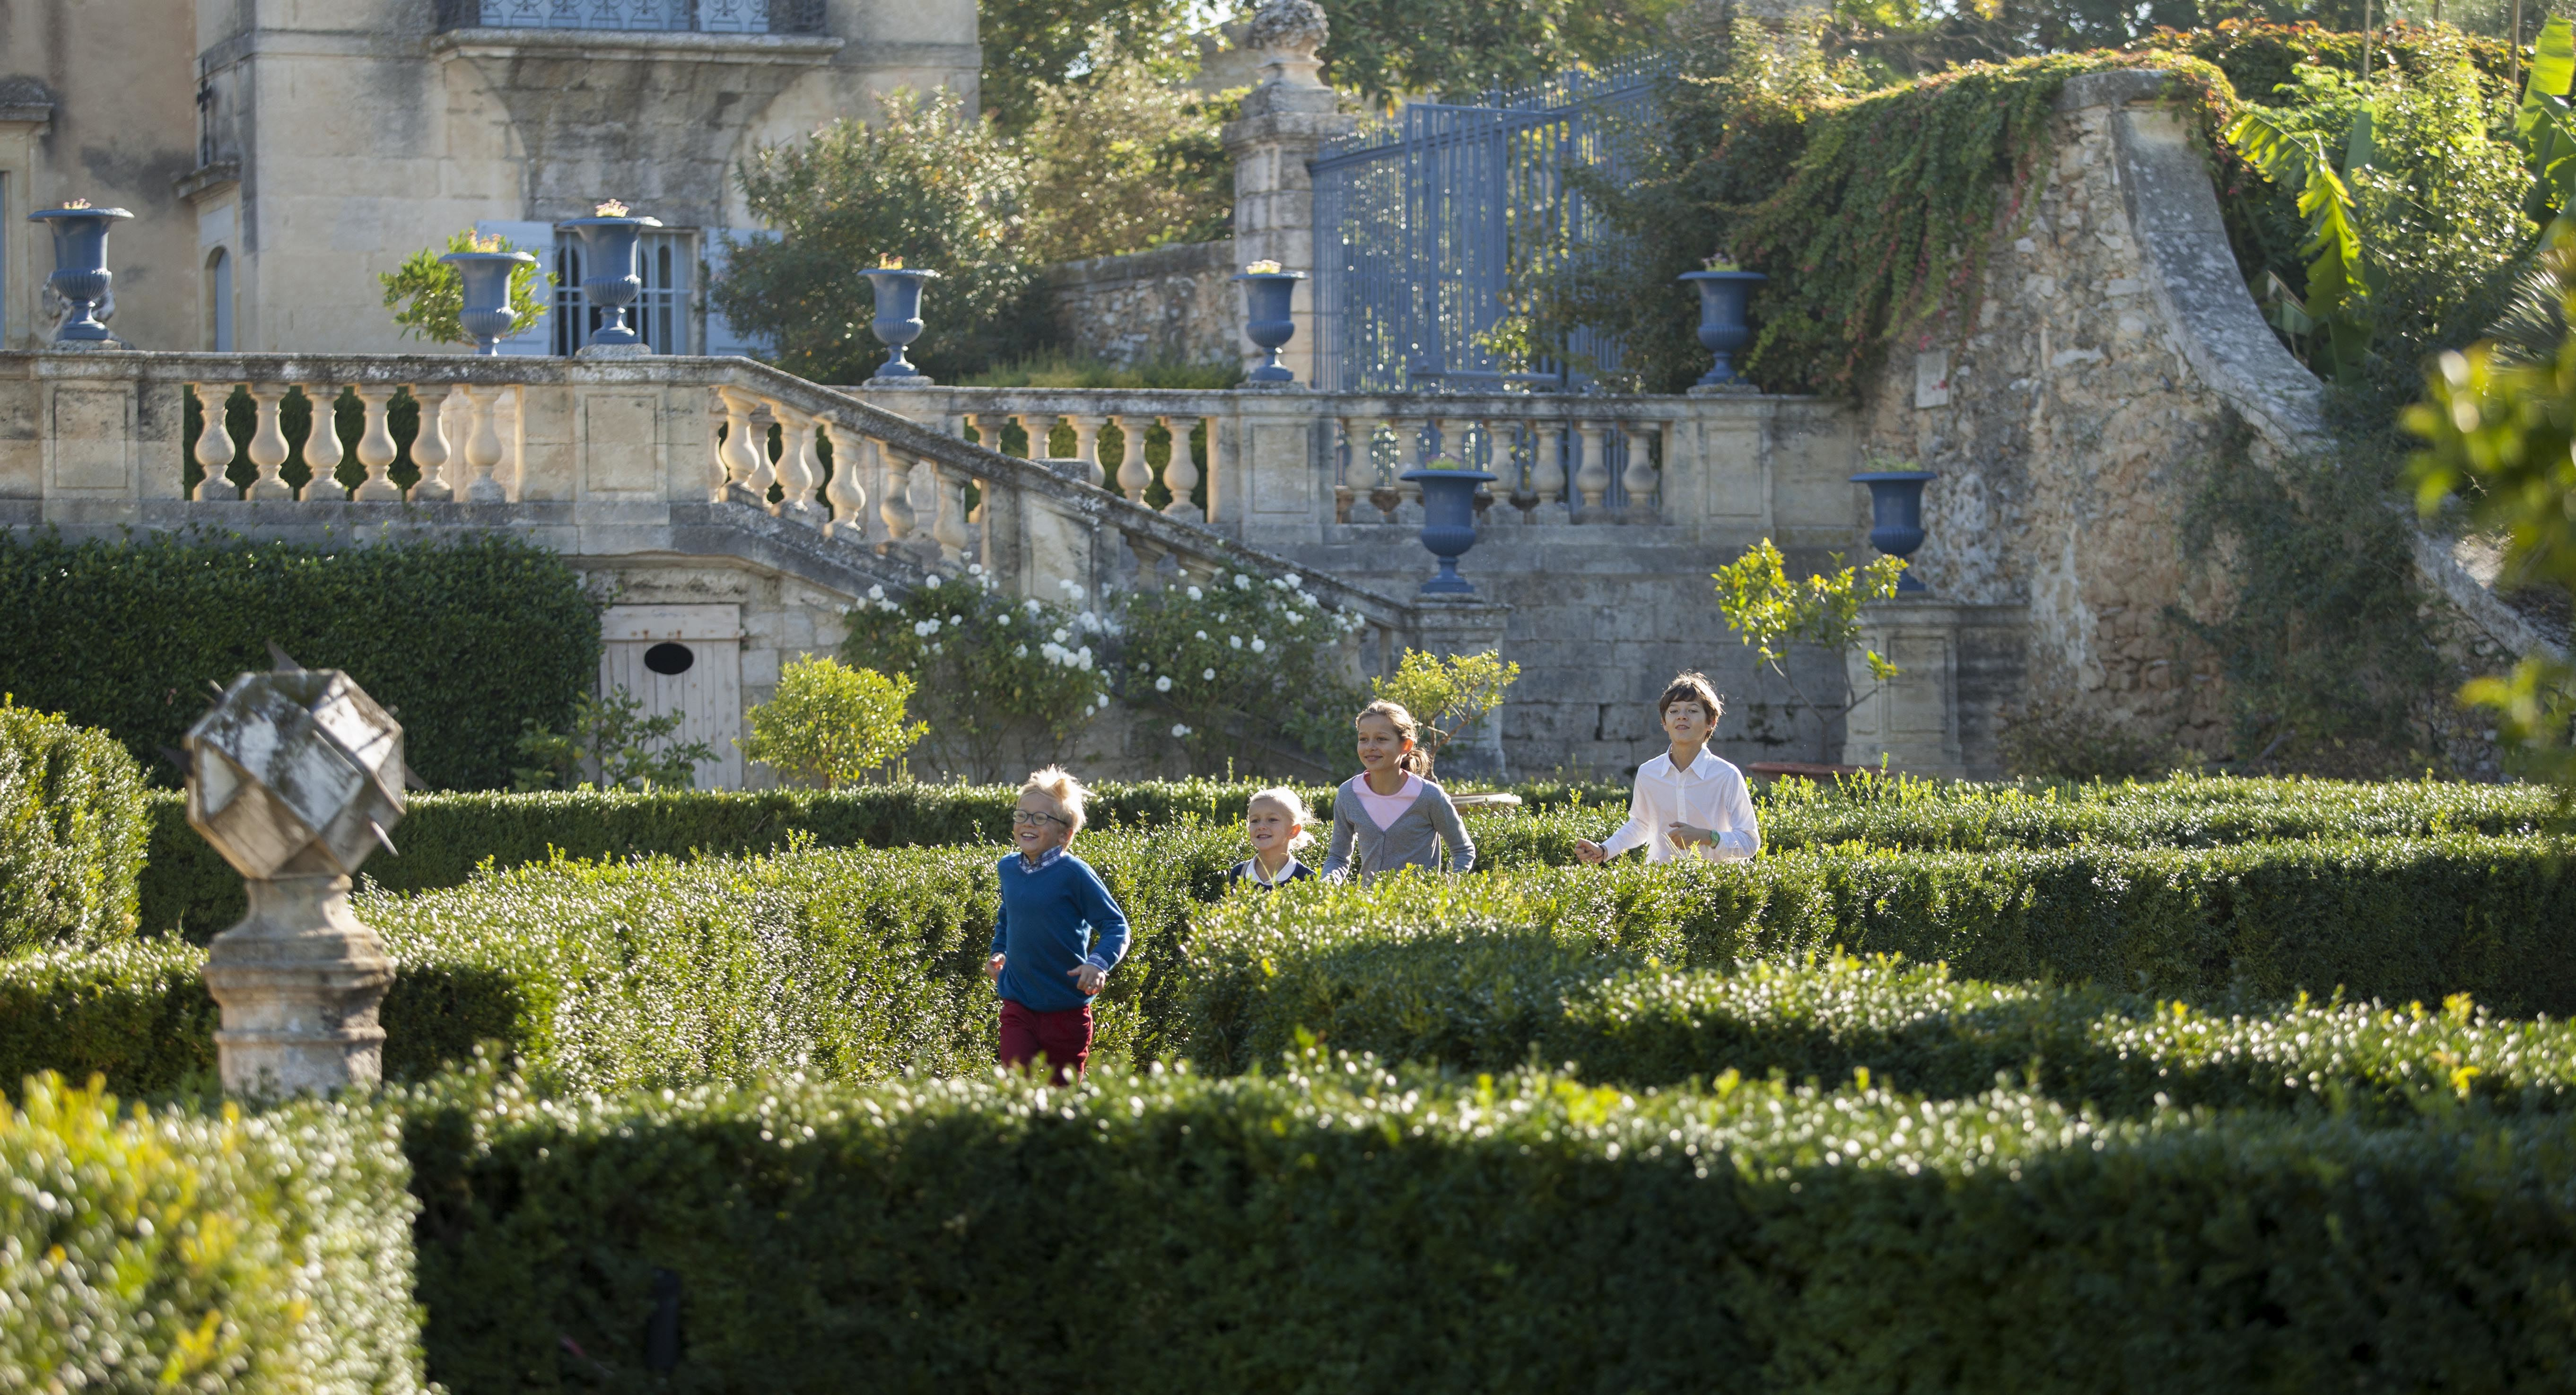 Guided tours of the Château